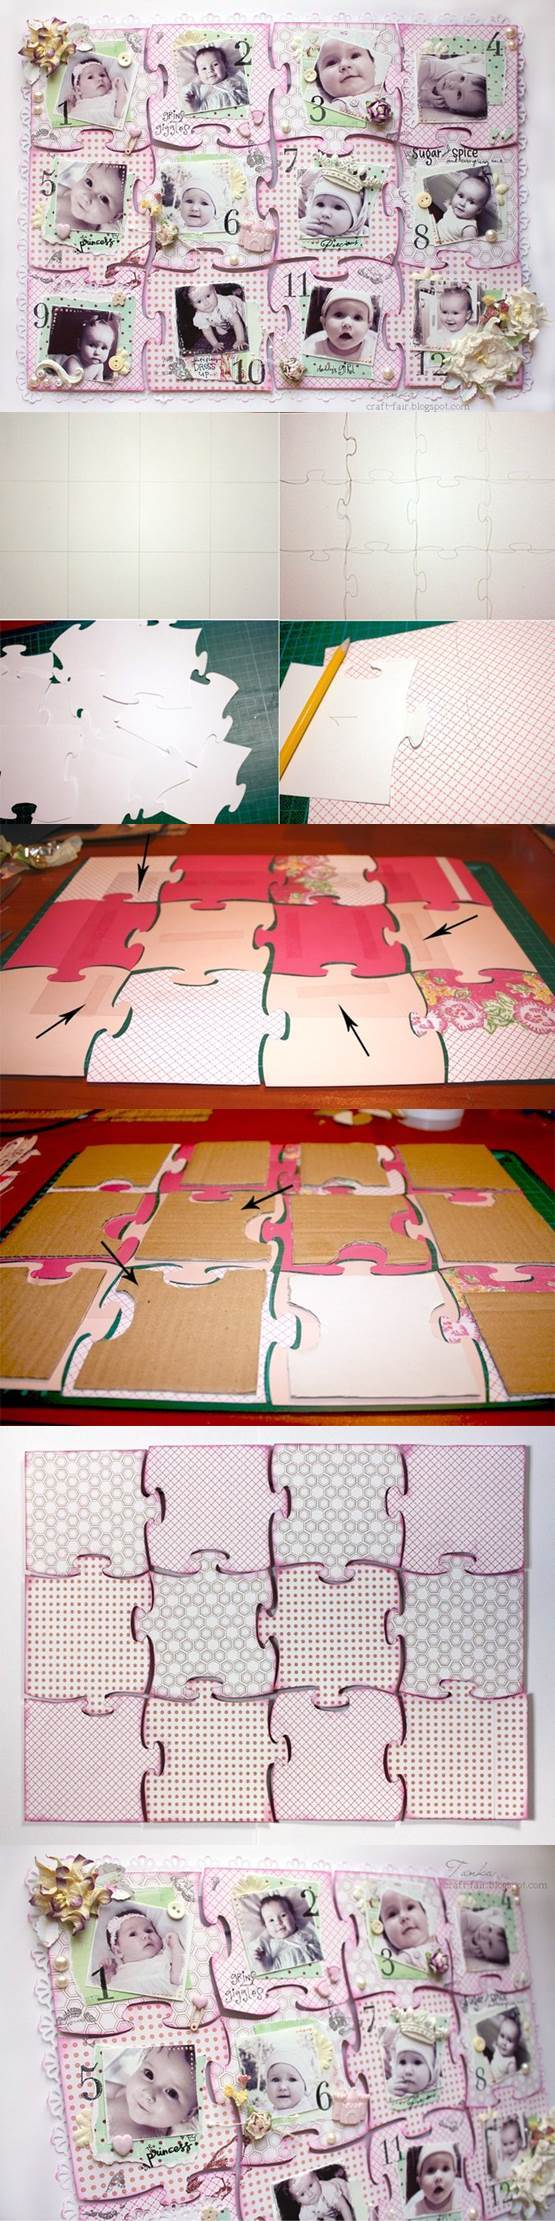 DIY Cardboard Collage Puzzle Baby Picture Frame